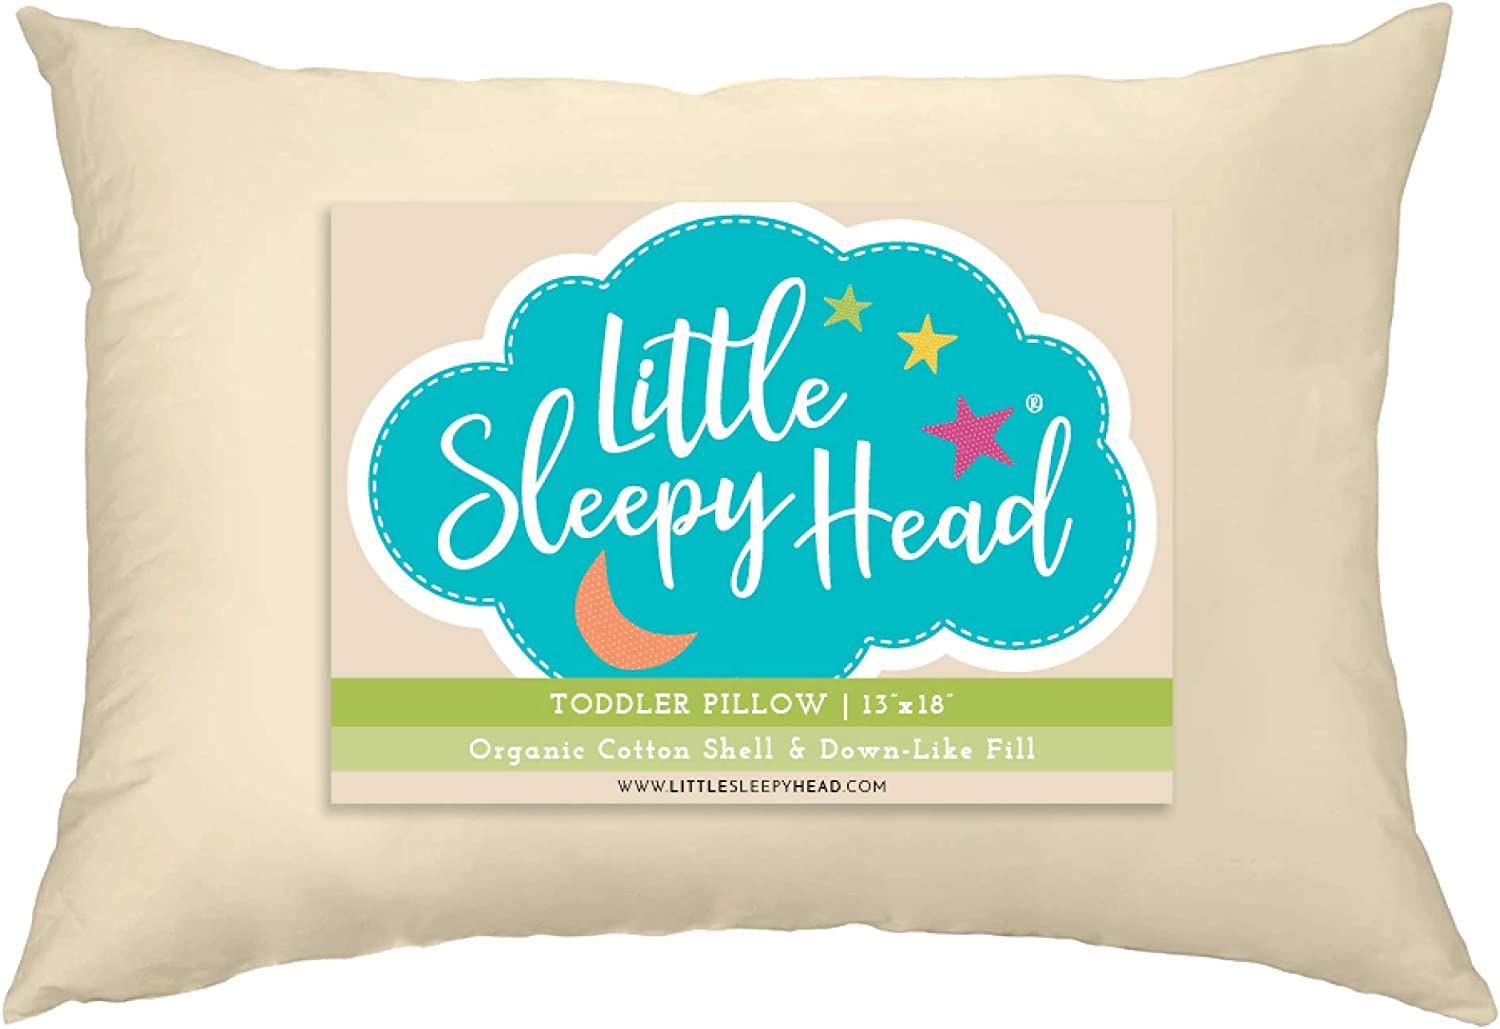 Little Sleepy Head Toddler Pillow, Organic Cotton, Down like Fill, Ivory 13 X 18